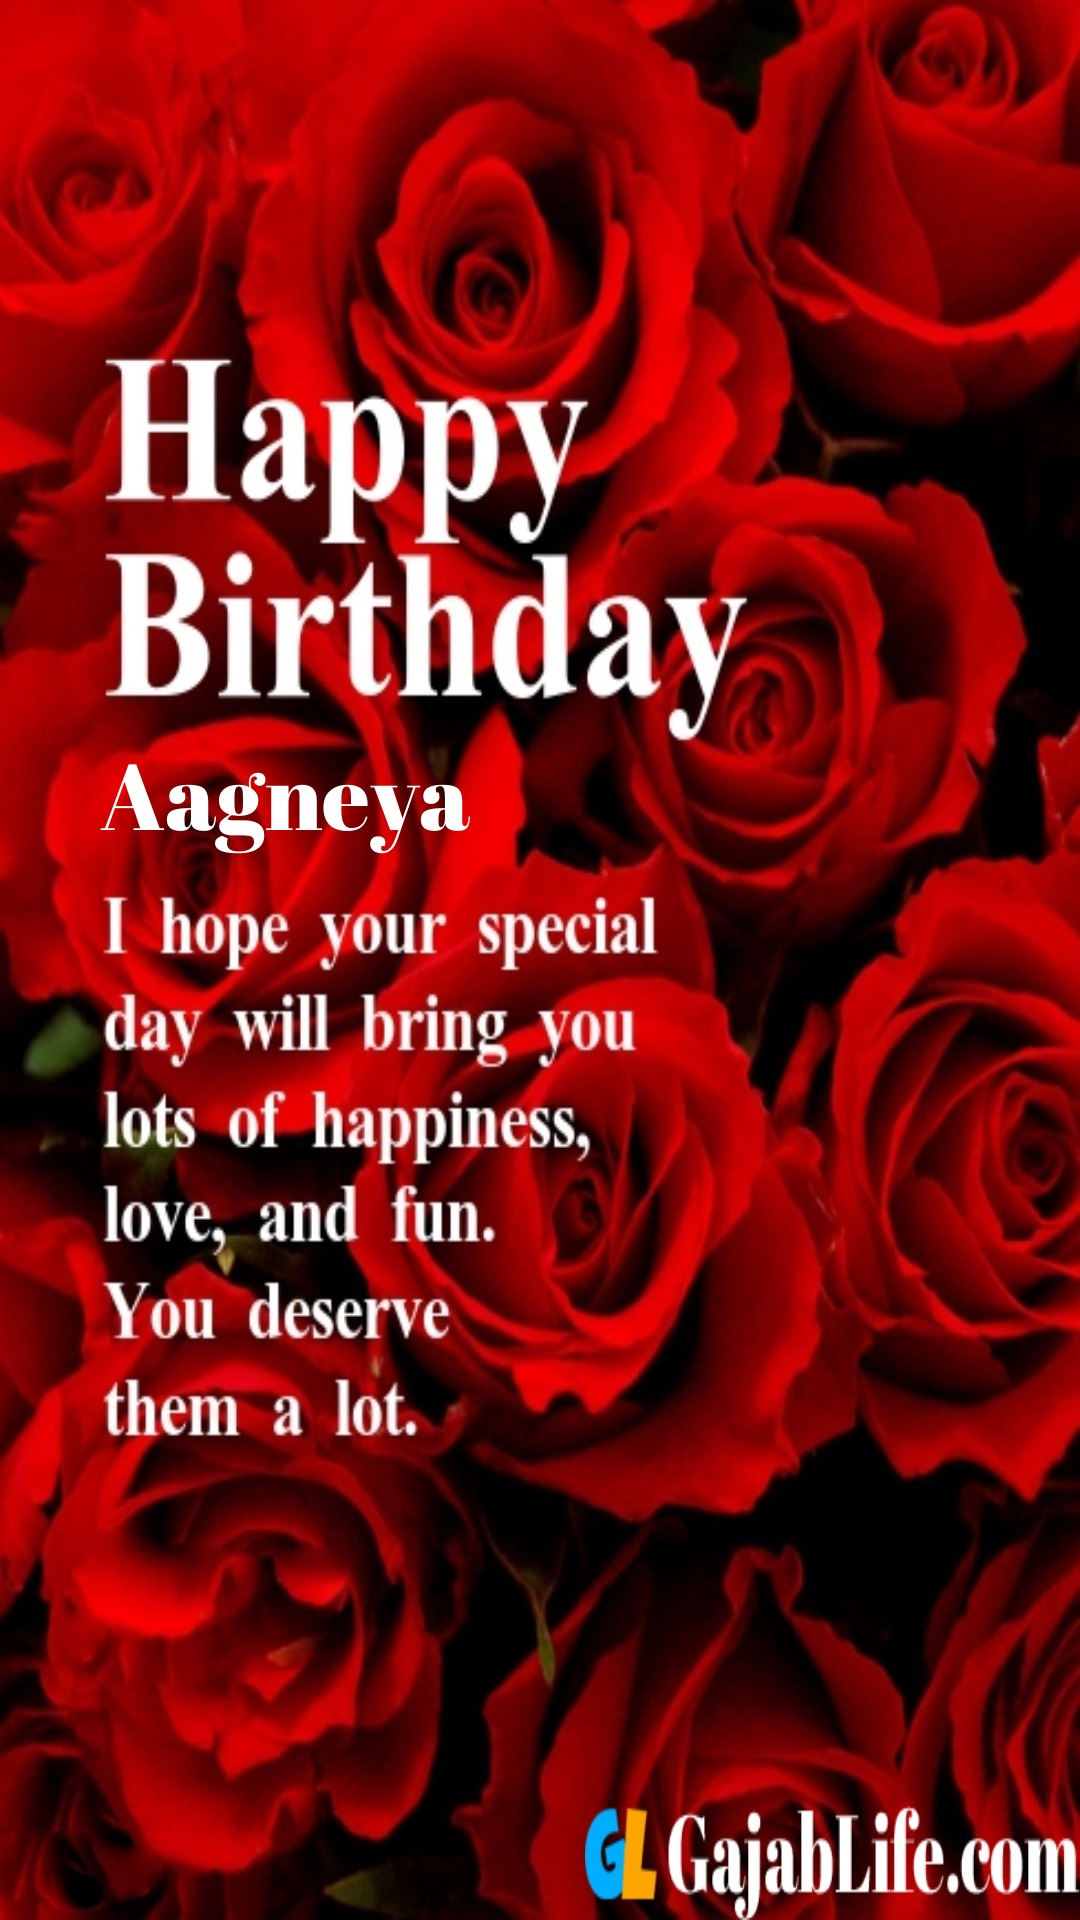 Aagneya birthday greeting card with rose & love